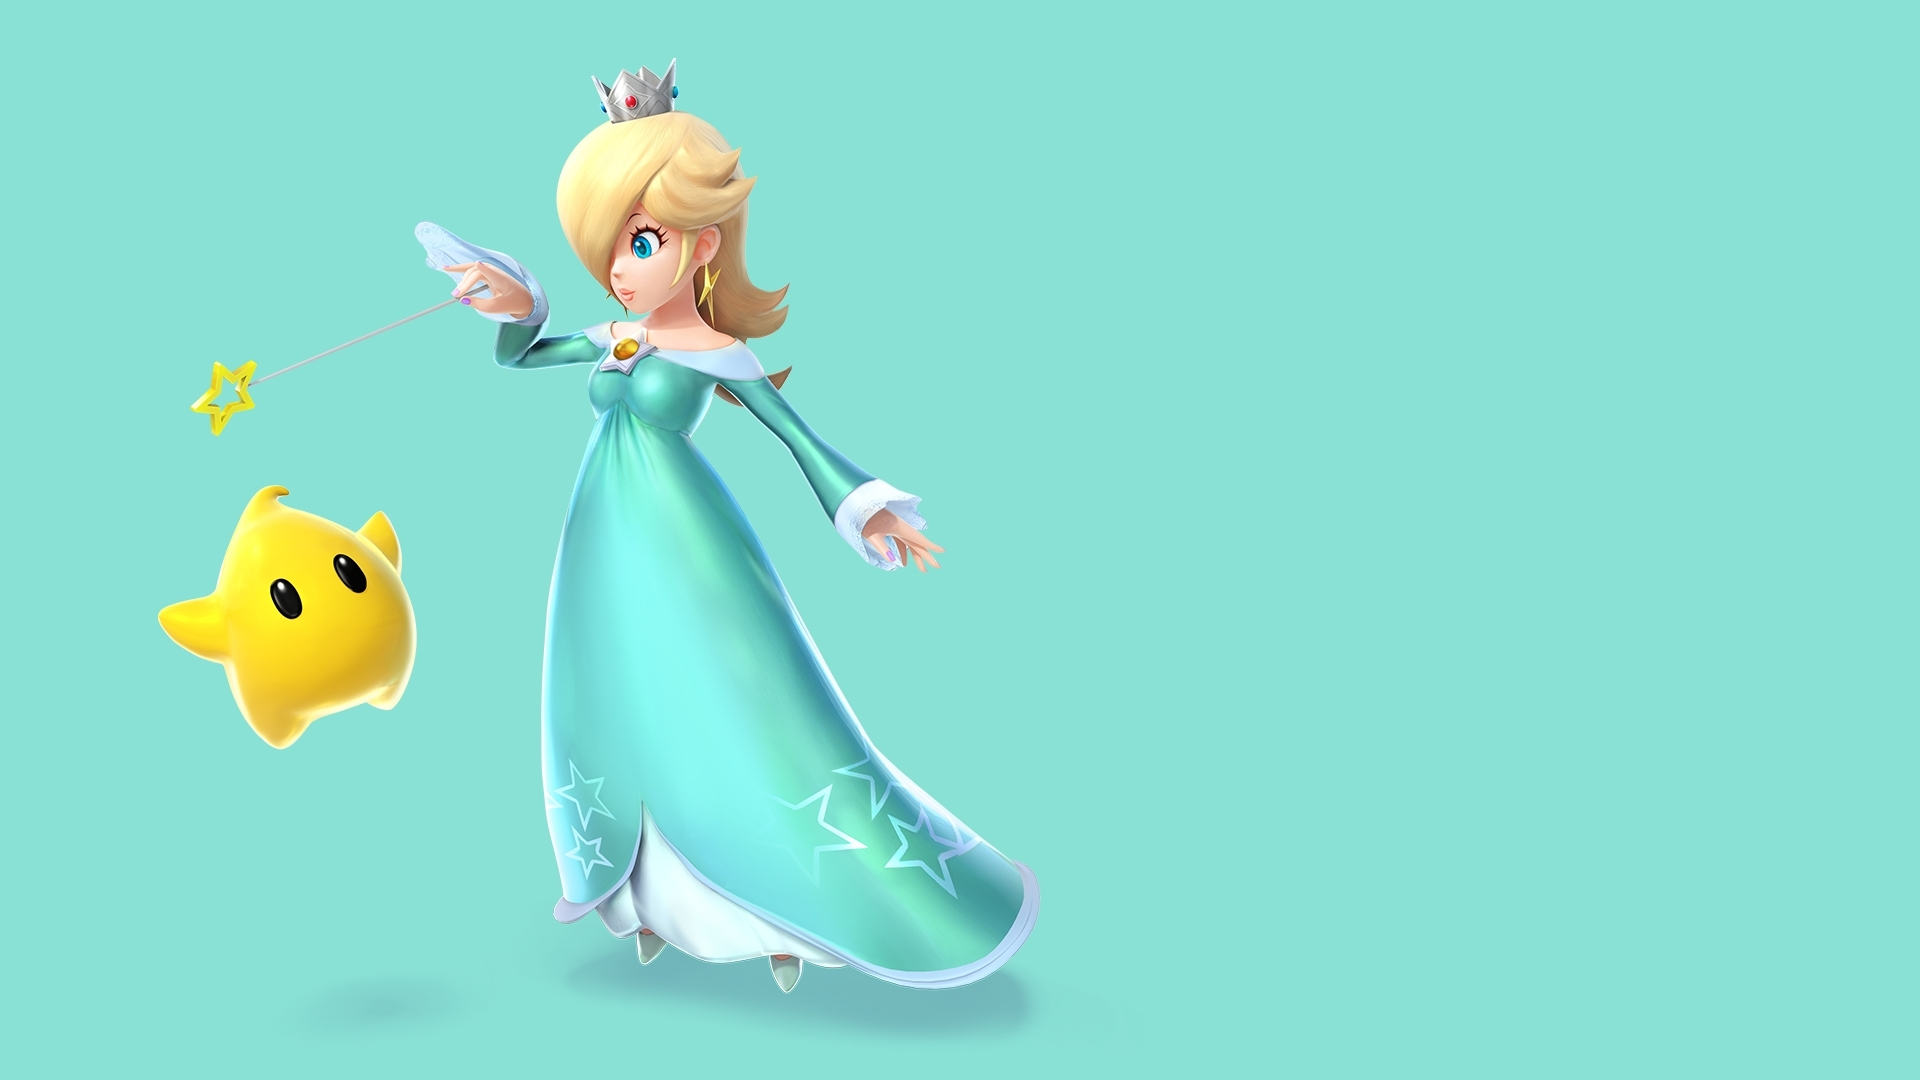 rosalina wallpaper tumblr | hd wallpapers | pinterest | wallpaper